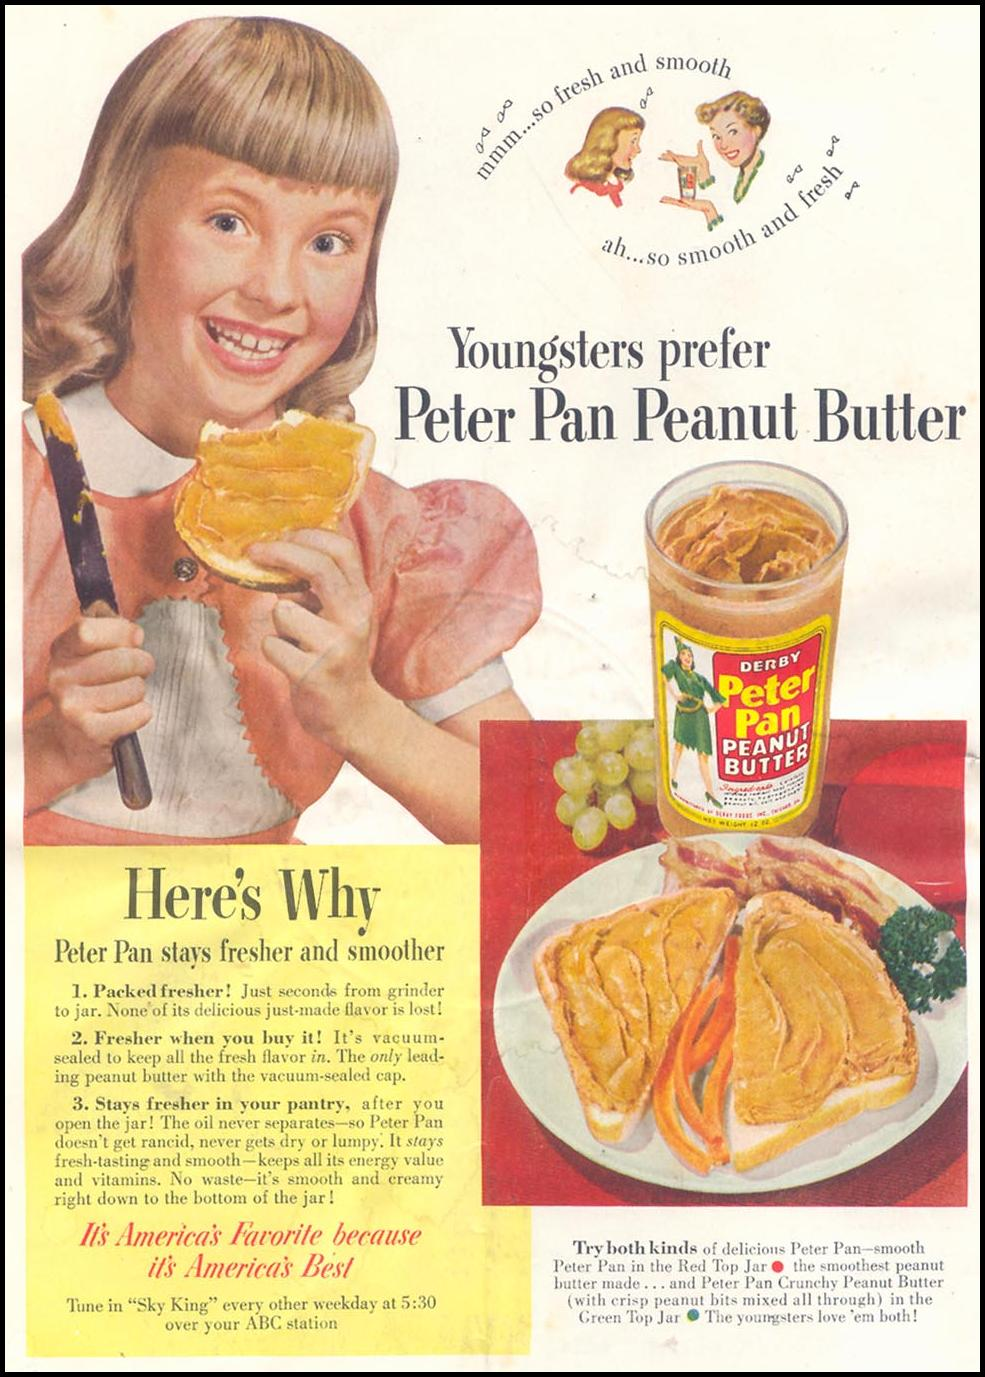 PETER PAN PEANUT BUTTER WOMAN'S DAY 10/01/1954 INSIDE FRONT